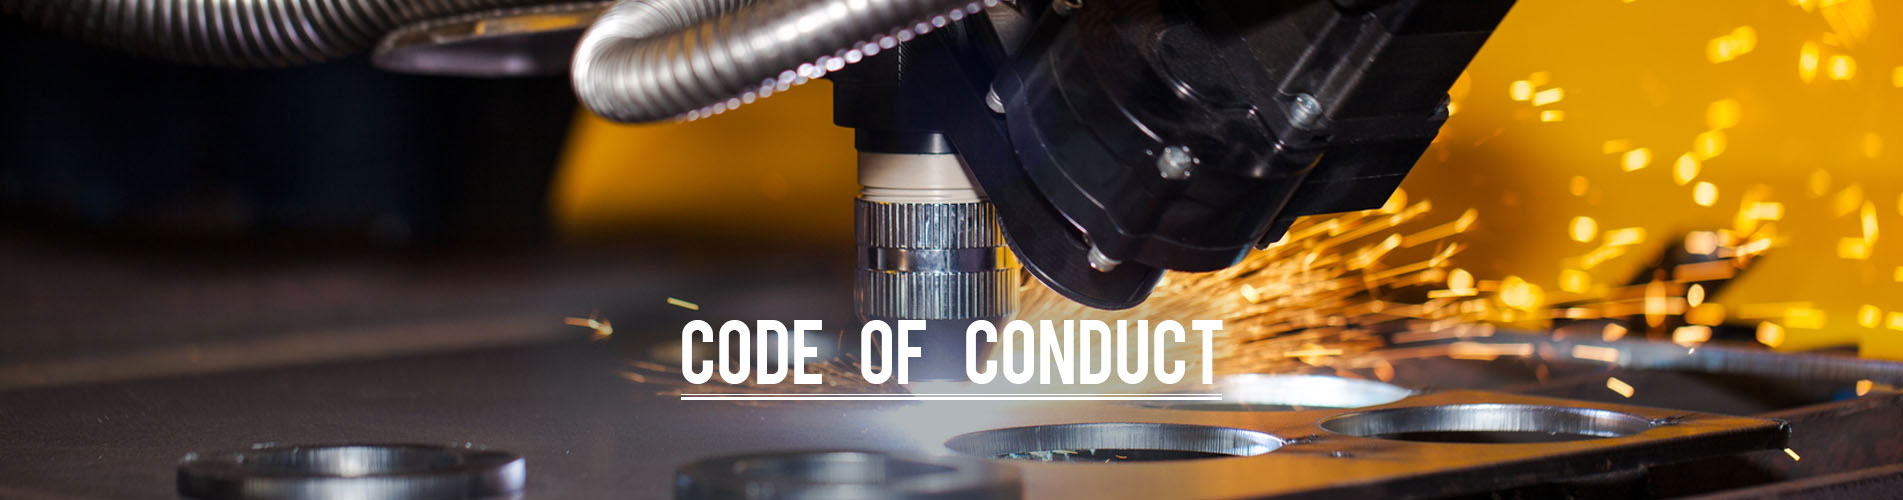 code of conduct banner